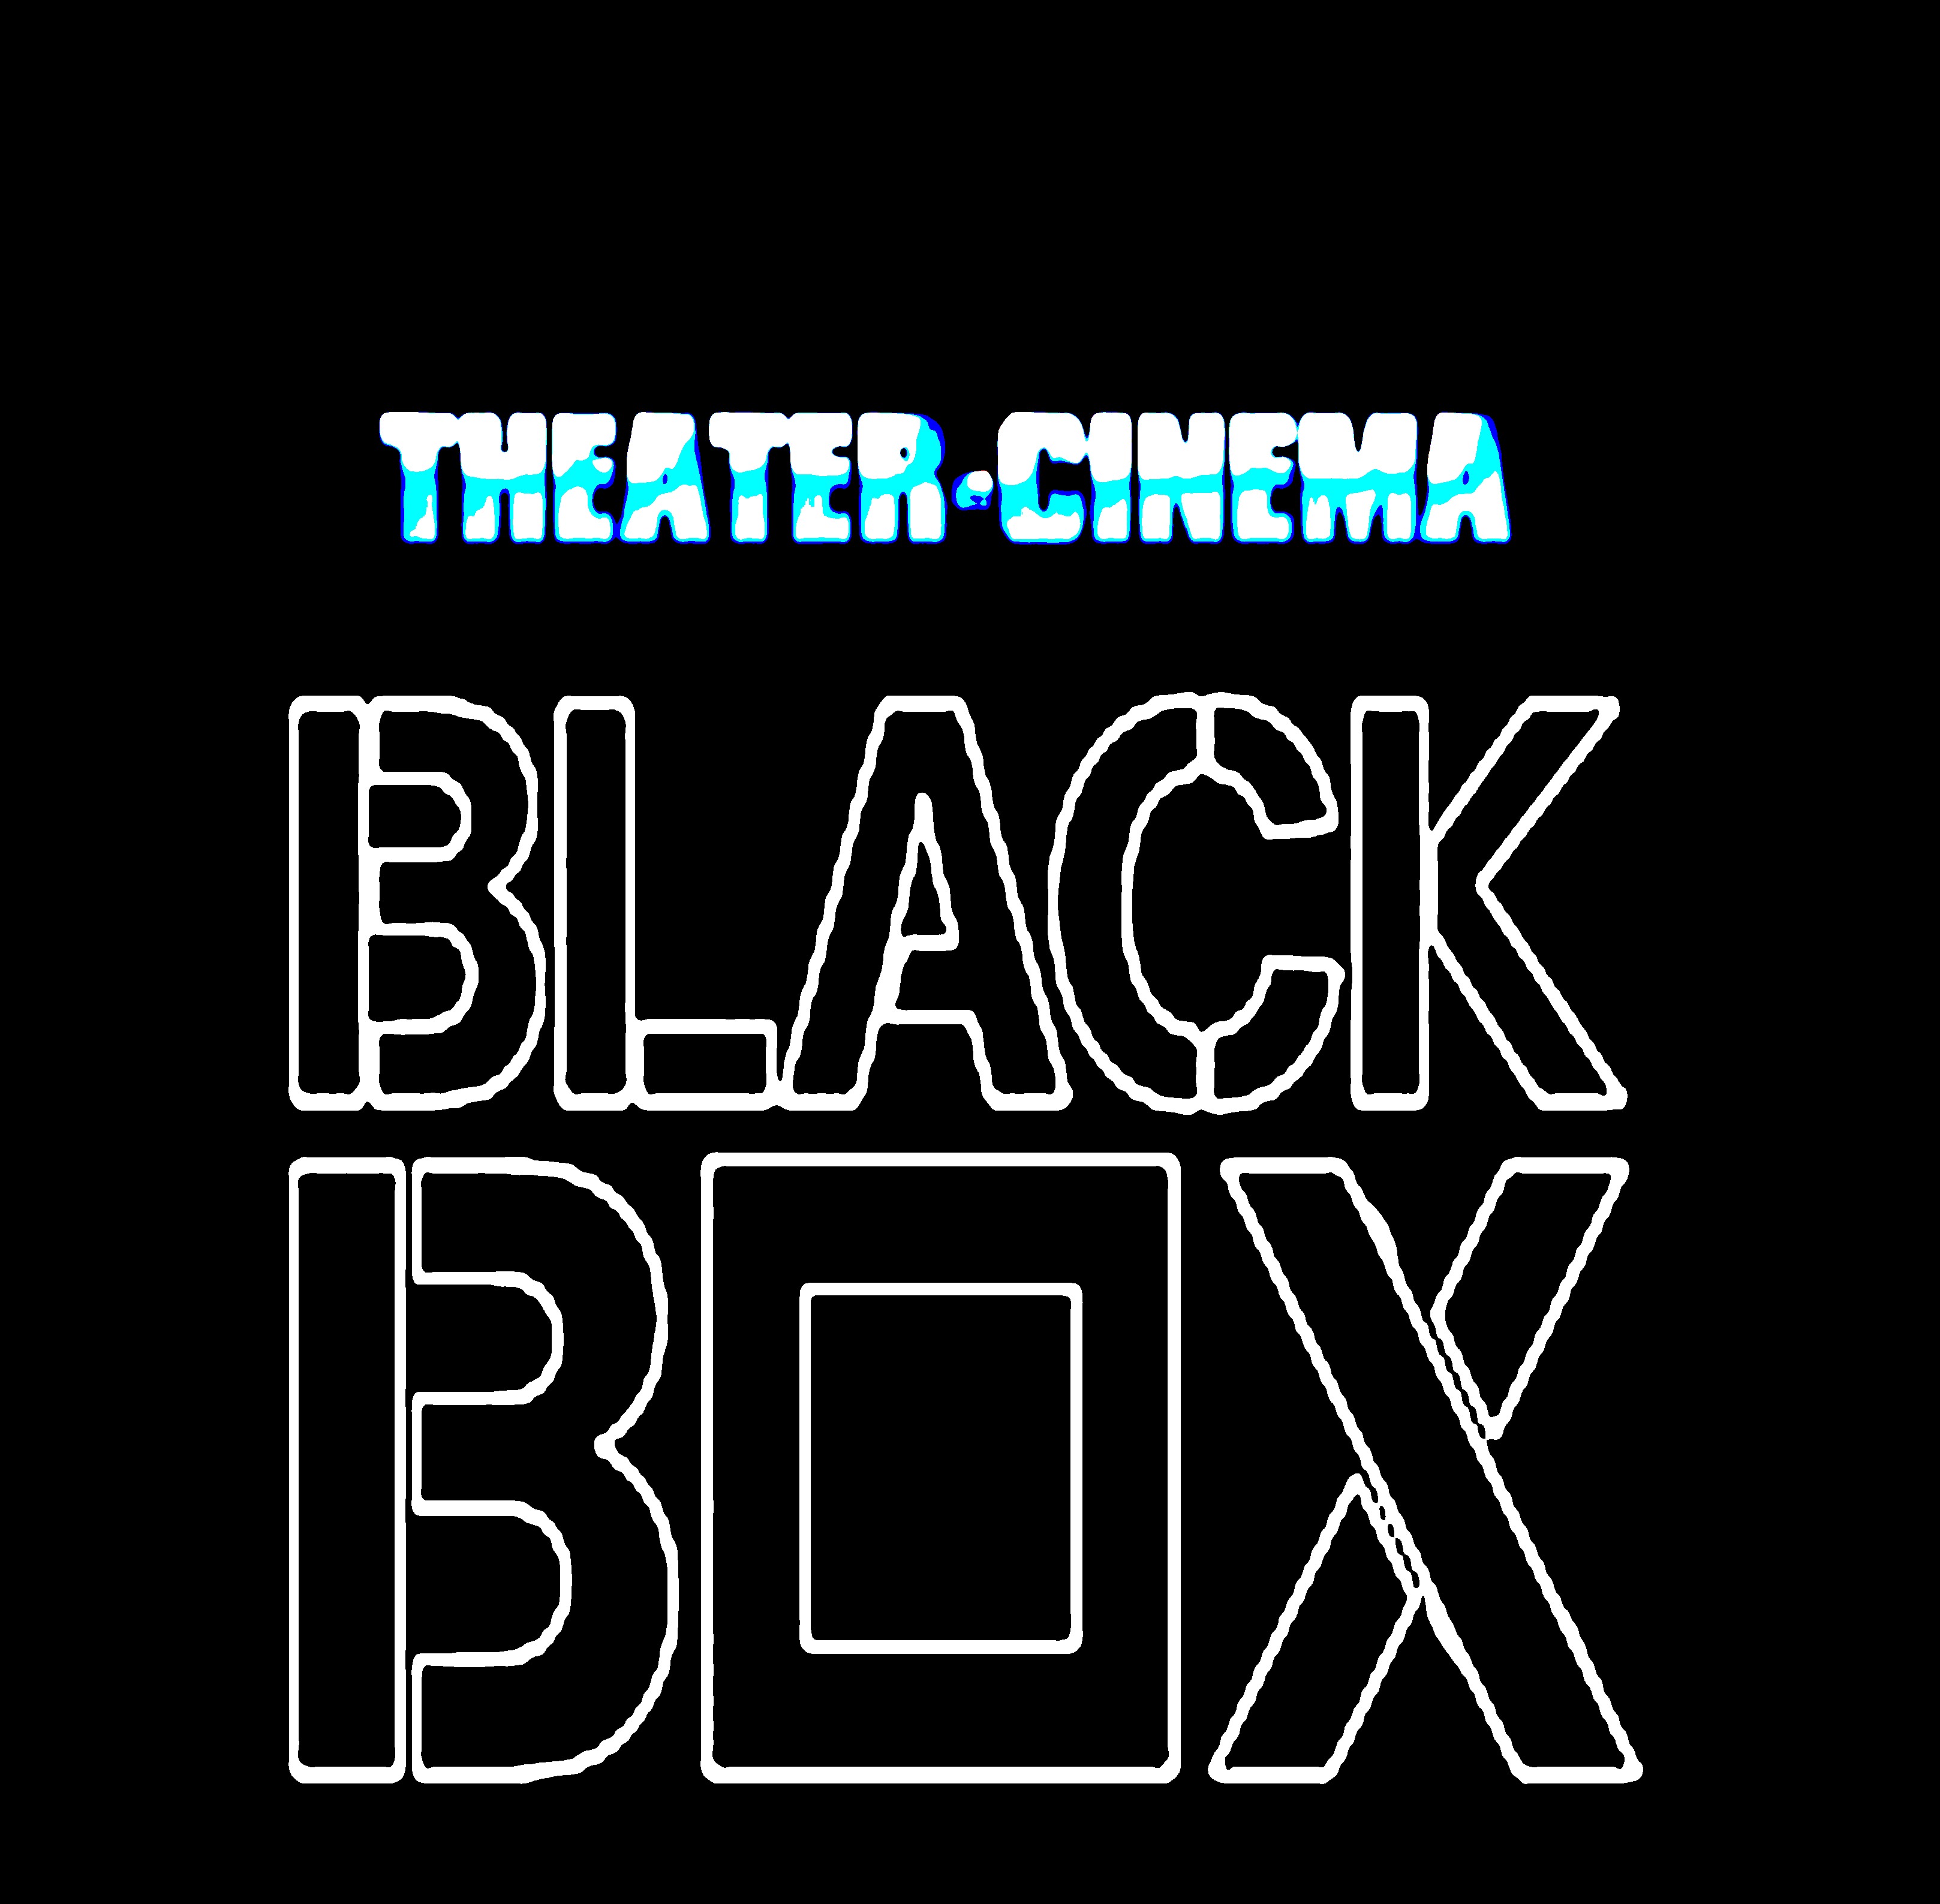 blackbox theater cinema